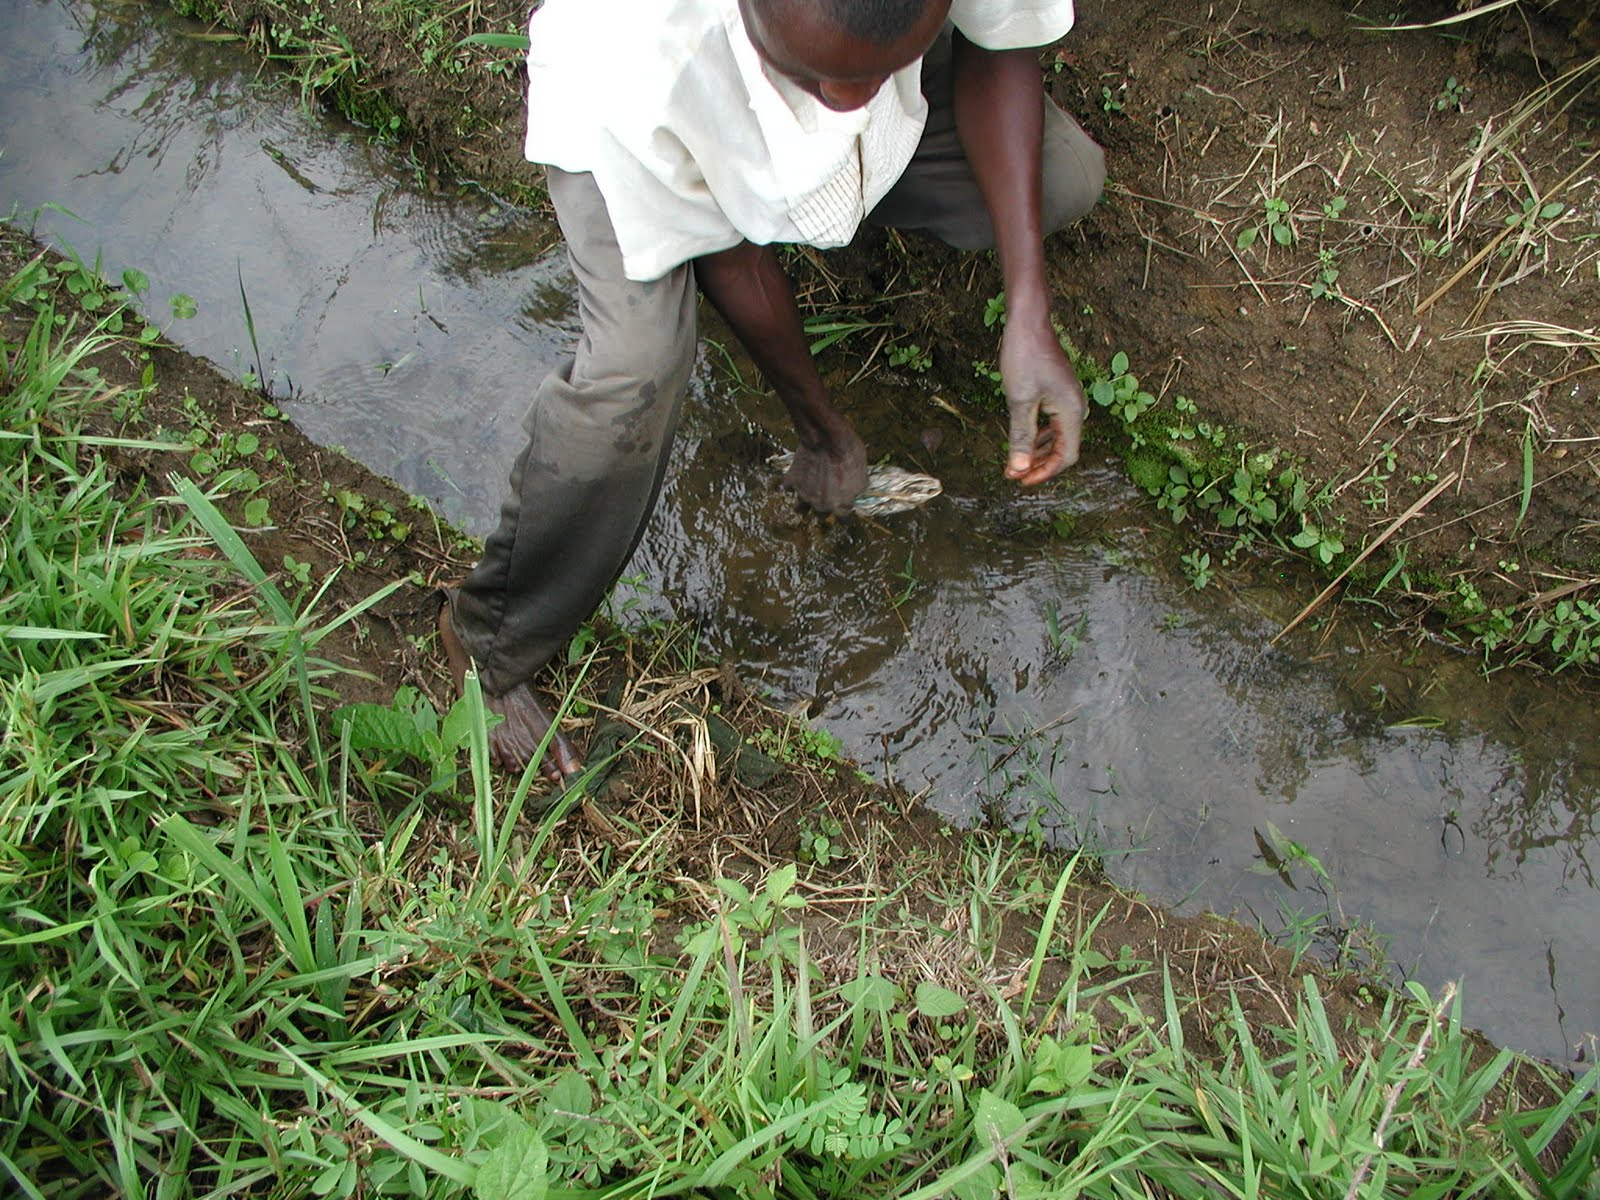 Dave 39 s east africa blog day 13 busia may 21 2011 for Filling in a pond